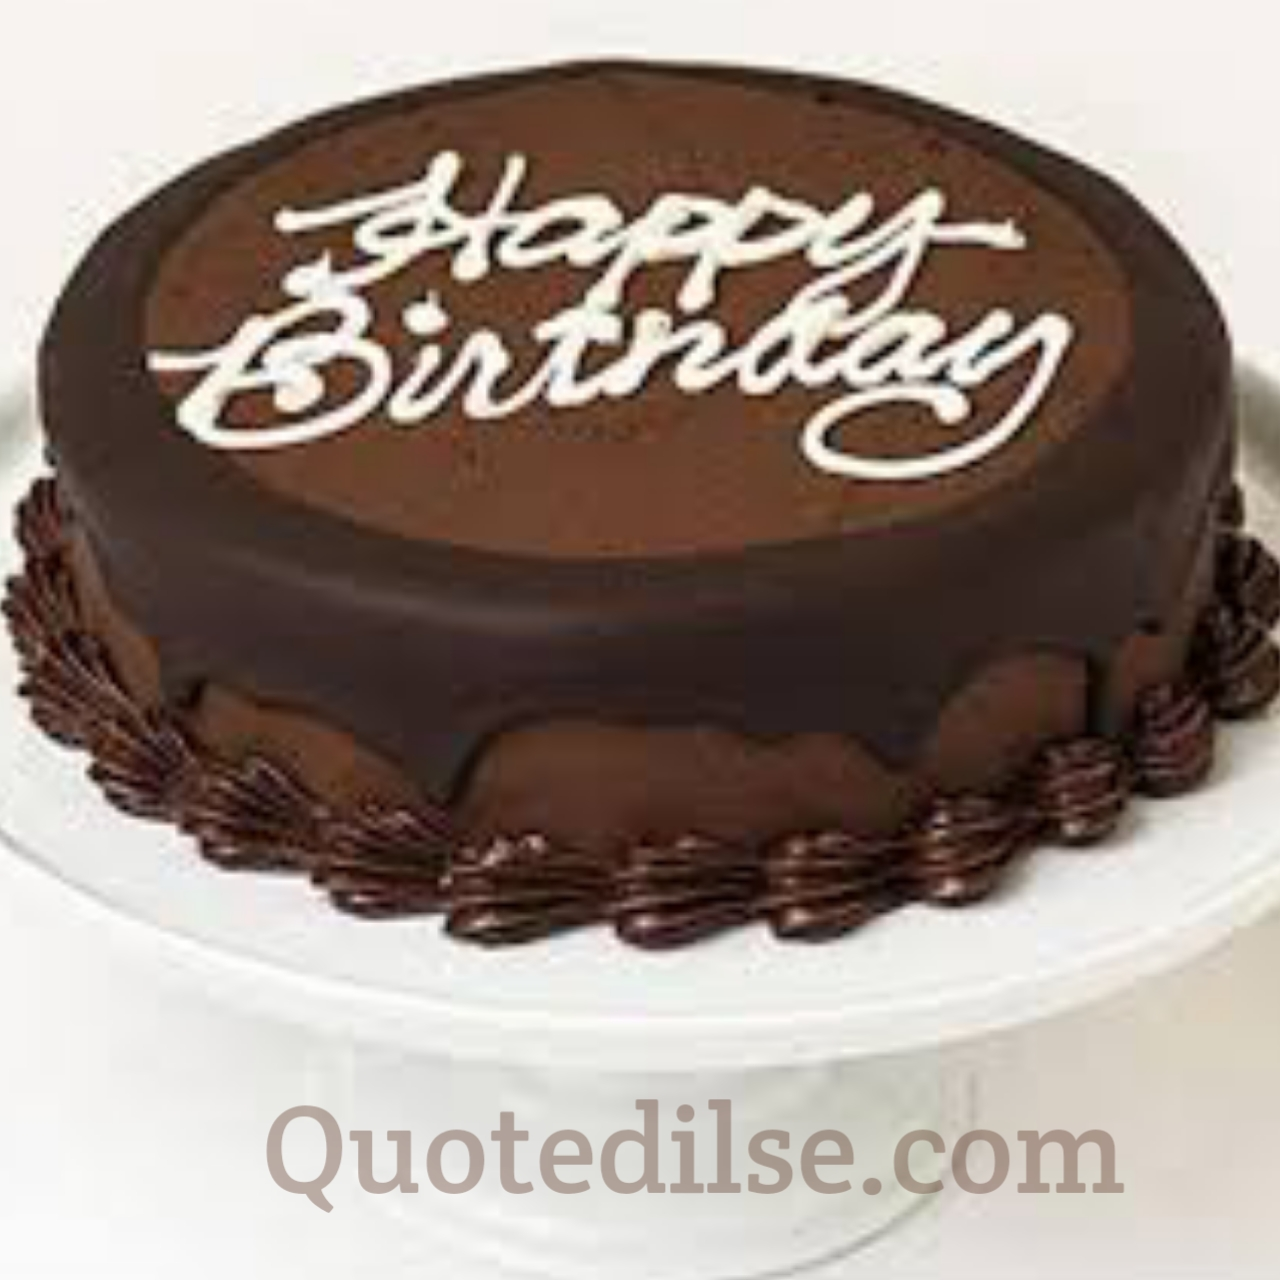 Pleasant Birthday Cake Images With Quotes Funny Birthday Cards Online Elaedamsfinfo